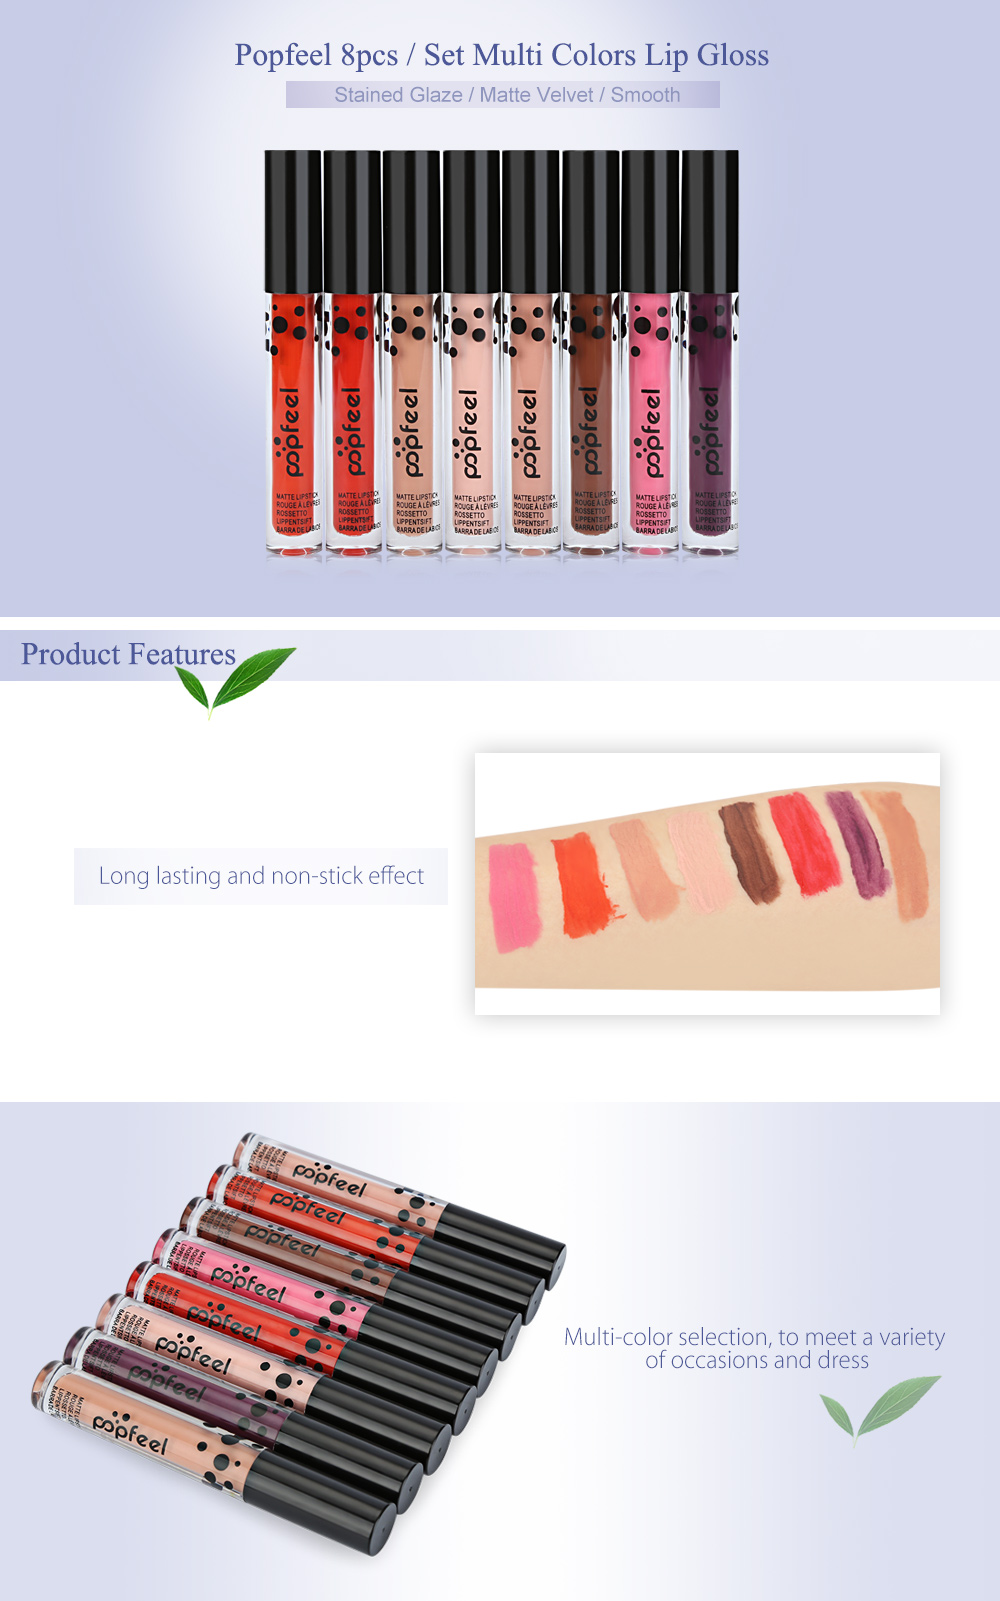 Popfeel 8pcs Colorful Stained Glaze Matte Smooth Lip Gloss Non-stick Effect